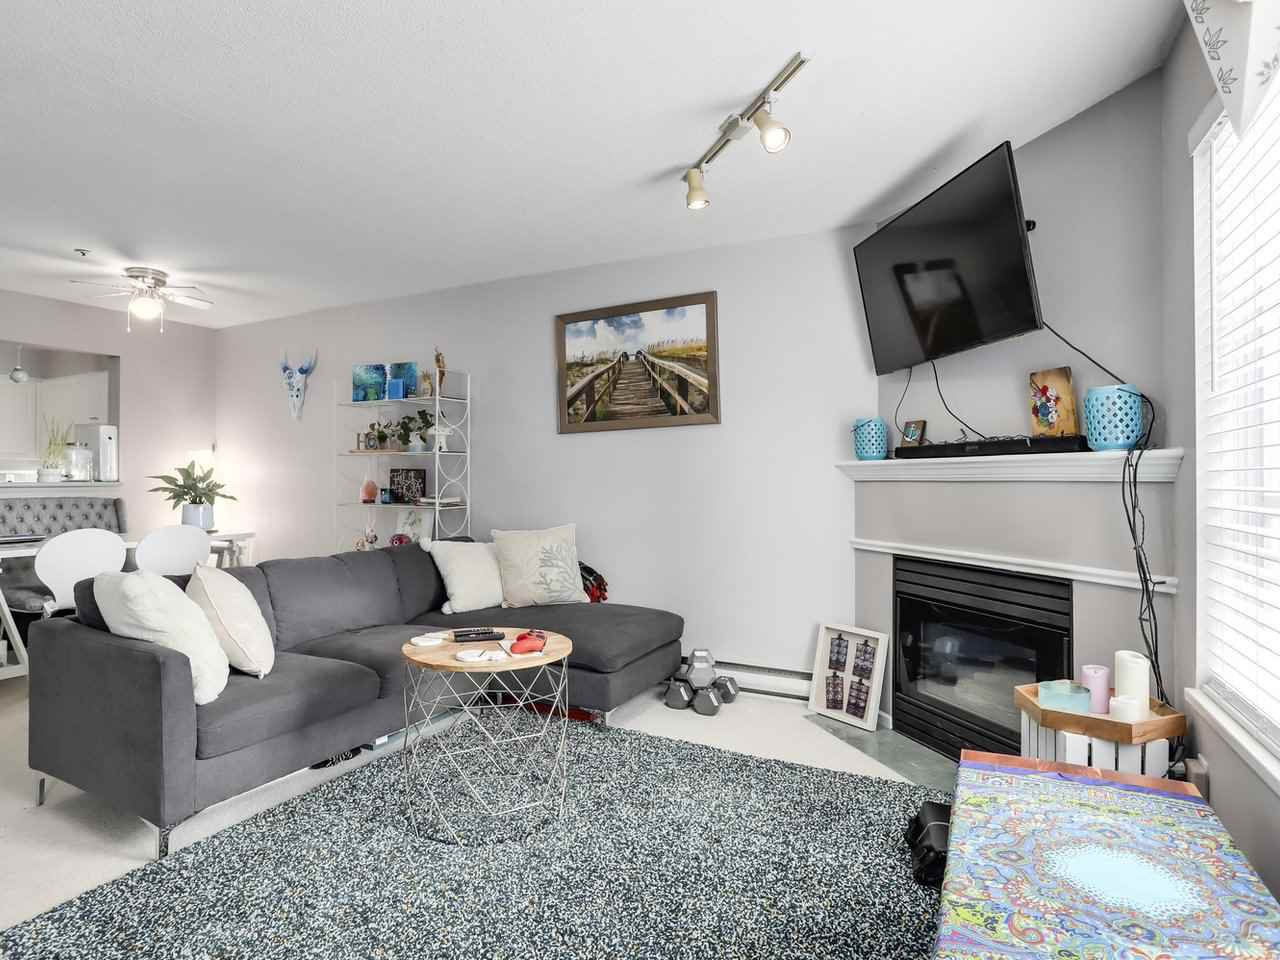 Photo 5: Photos: 107 295 SCHOOLHOUSE Street in Coquitlam: Maillardville Condo for sale : MLS®# R2286753